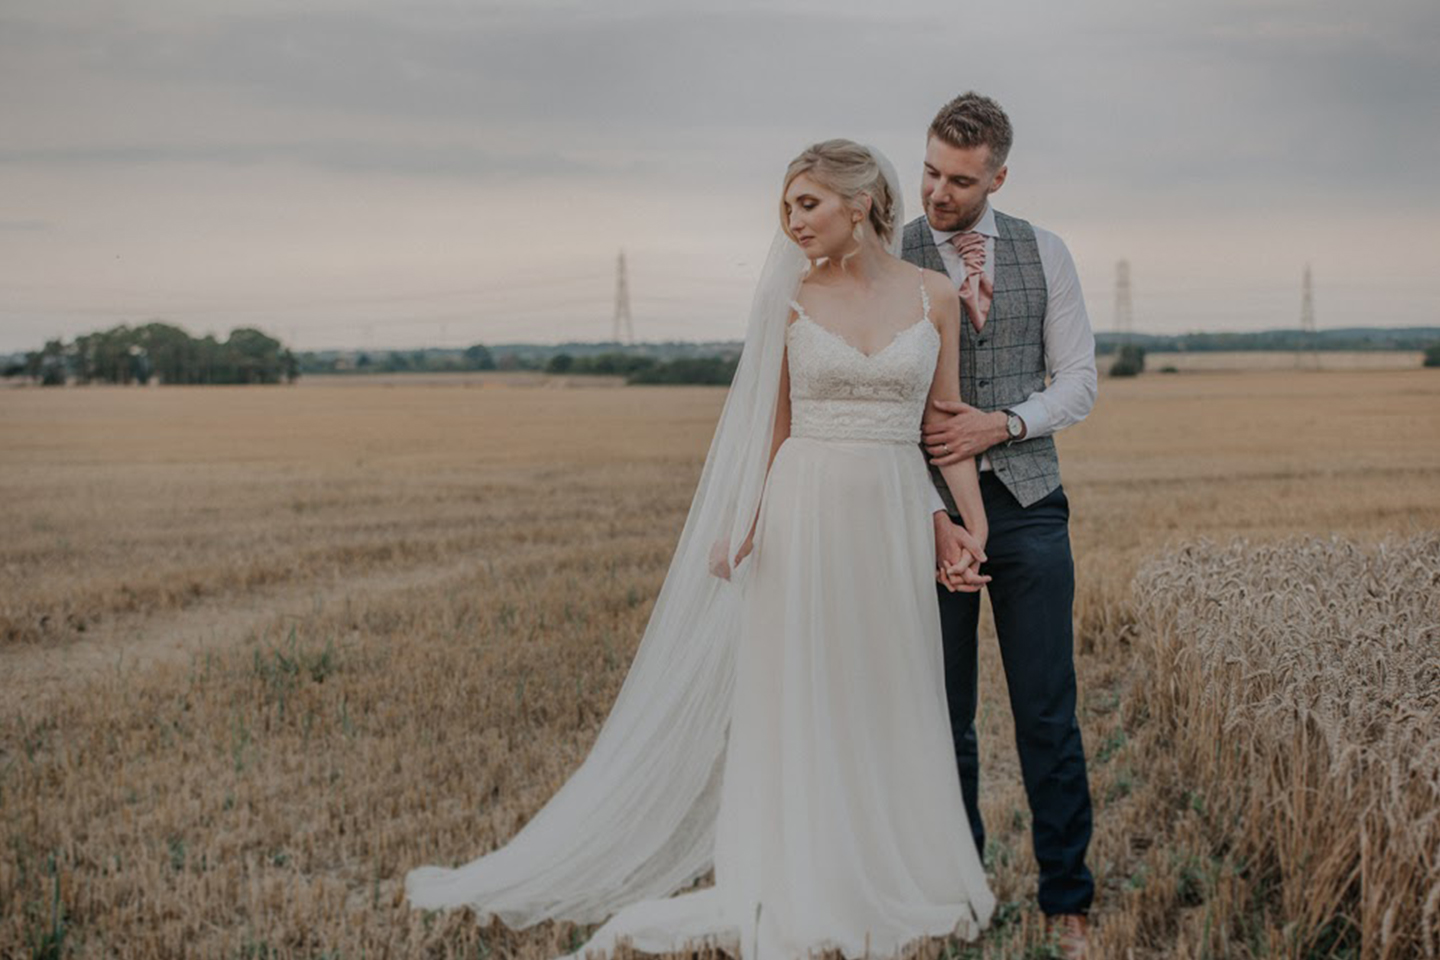 The bride and groom make the most of the countryside that surrounds Bassmead Manor Barns on their wedding day